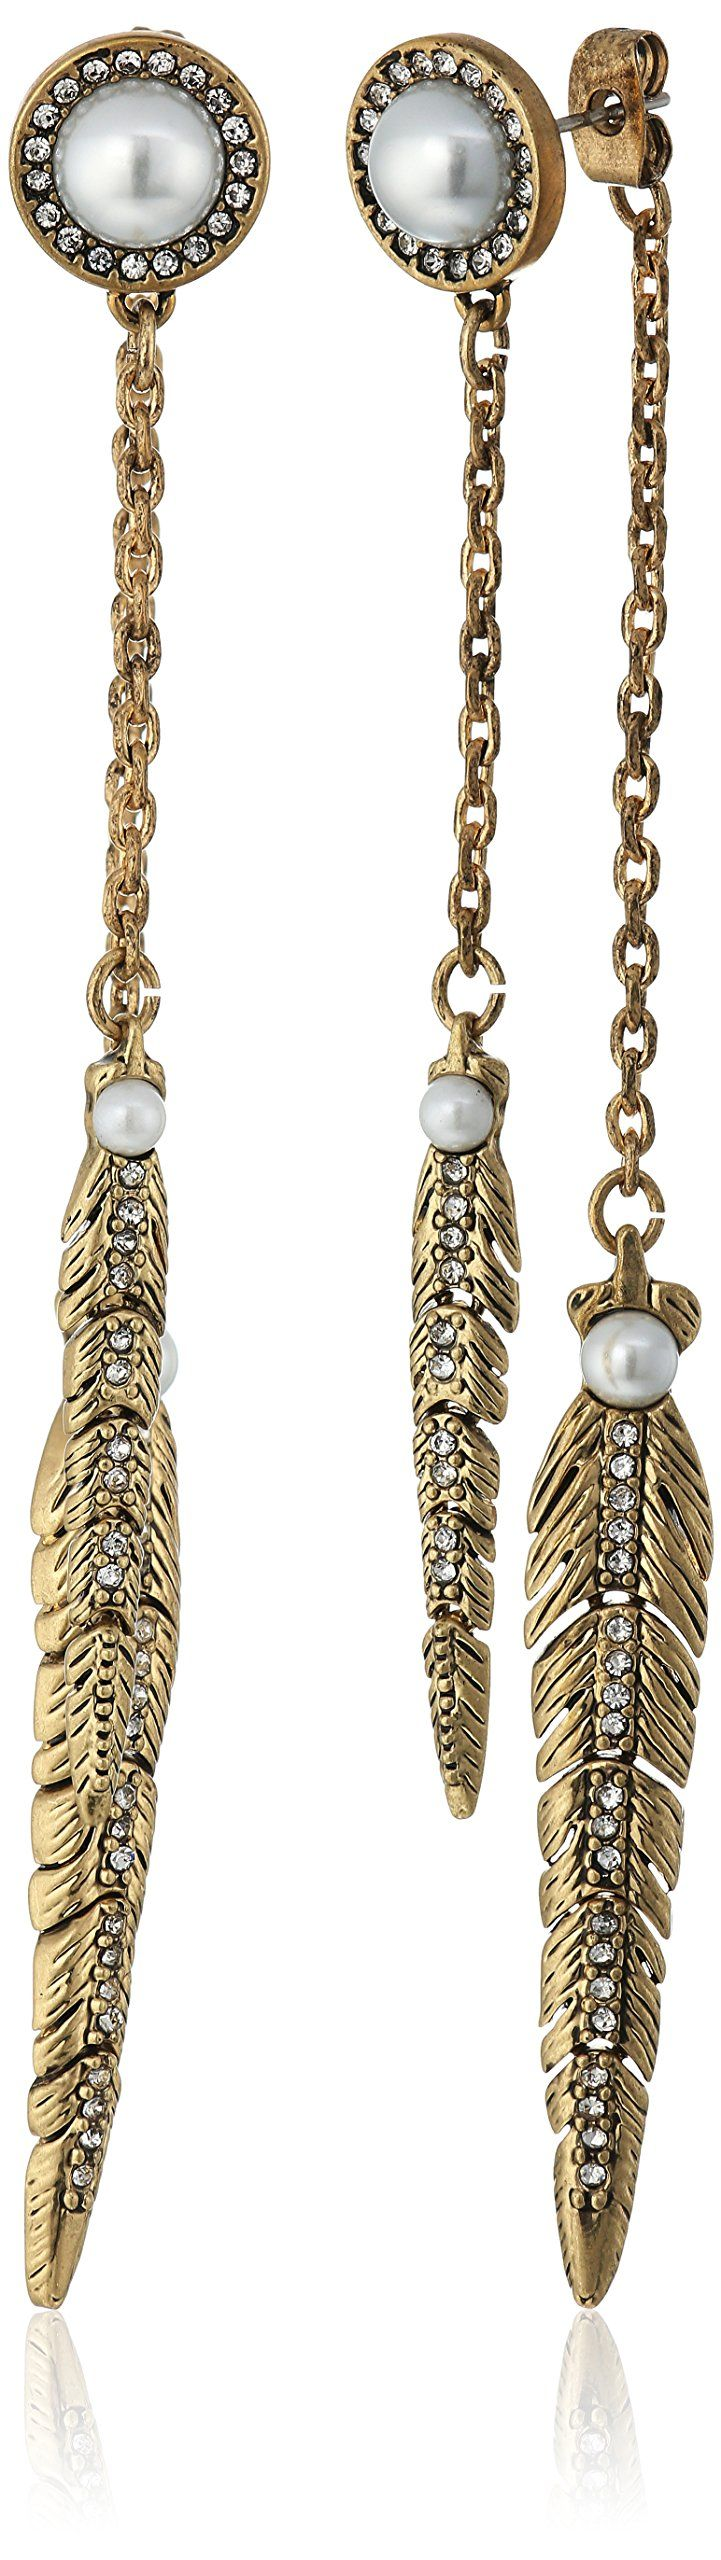 Rebecca Minkoff Antique Gold with Pearl Feather Front Back Drop Earring. Antique gold plated earrings with fauz pearl and feather shaped detail. Post with friction back. Remove jewelry when showering, swimming, or exercising. Avoid contact with perfumes and soaps. Store in protective pouch. Designed in New York, Made in China.